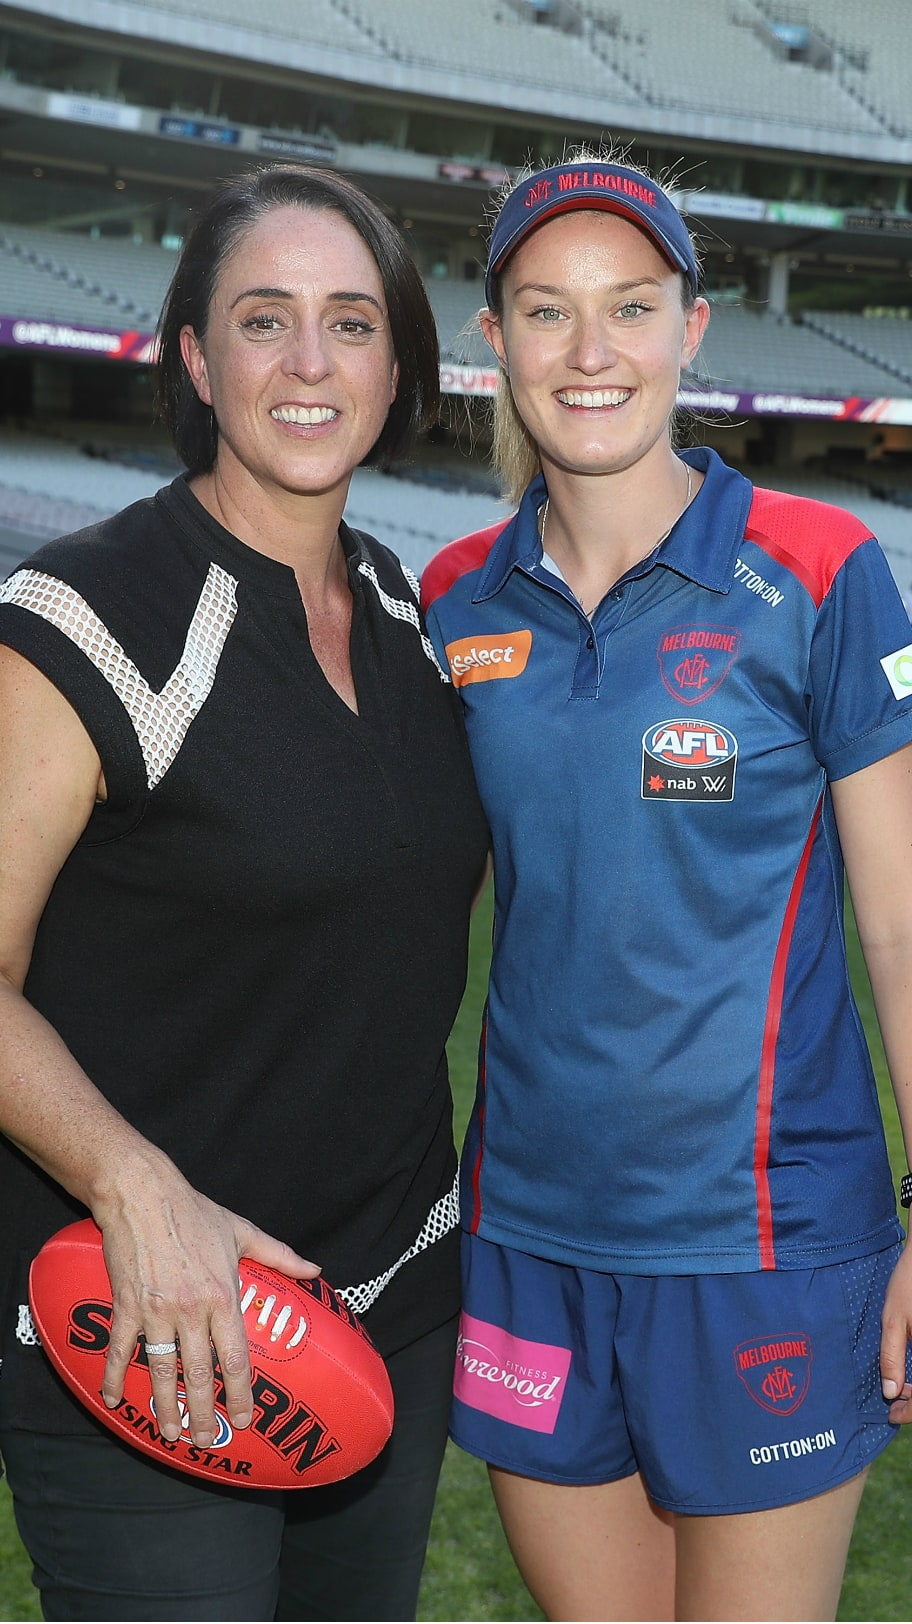 Maddie Shevlin with Nicole Livingston at the IWD event - AFLW,Melbourne Demons,Maddie Shevlin